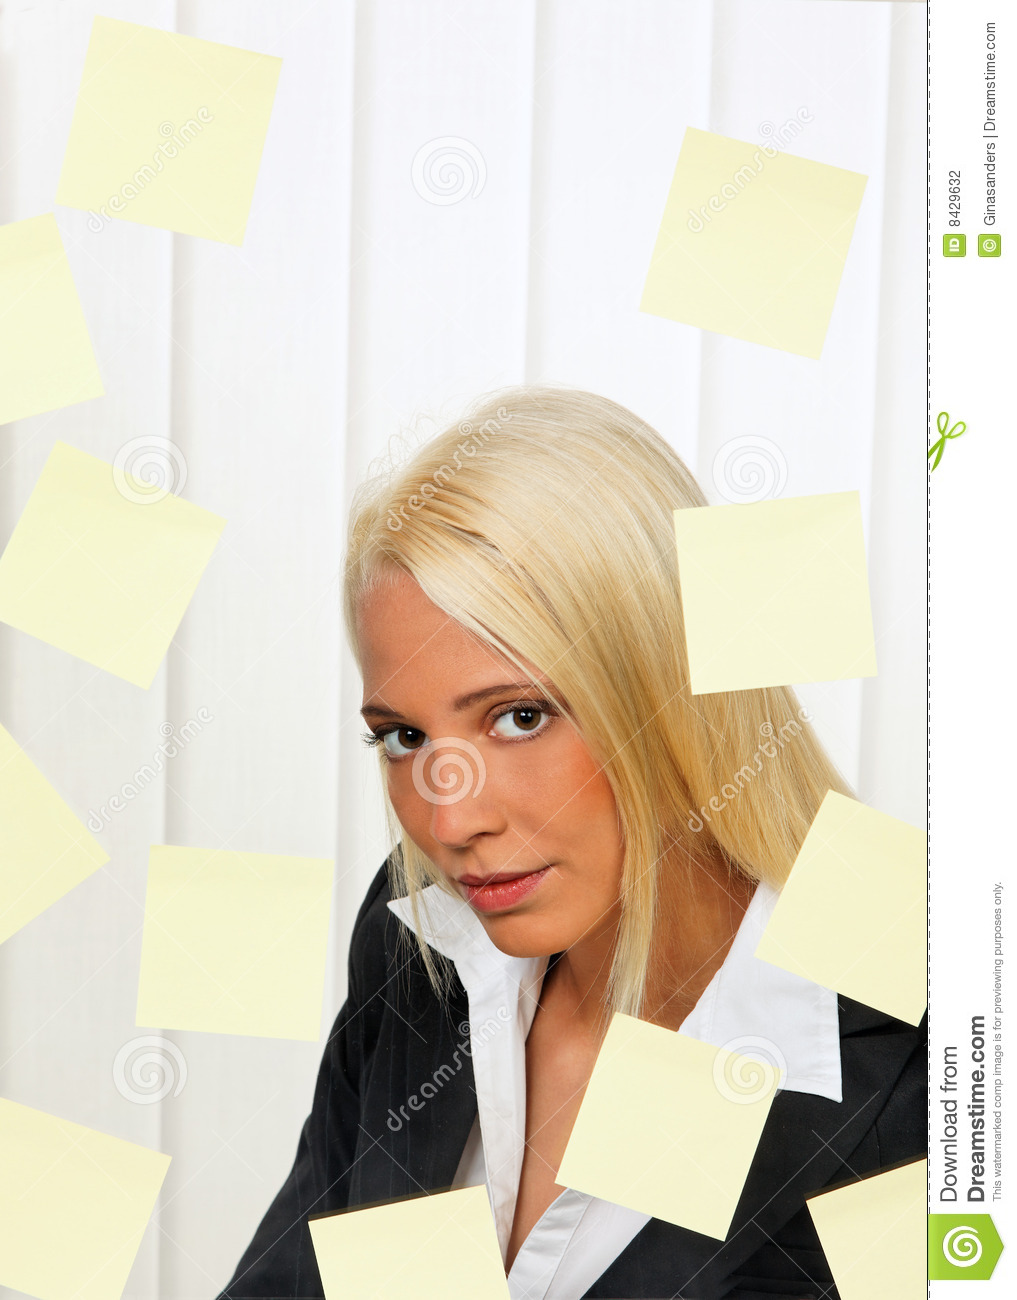 Post-it notes and worker